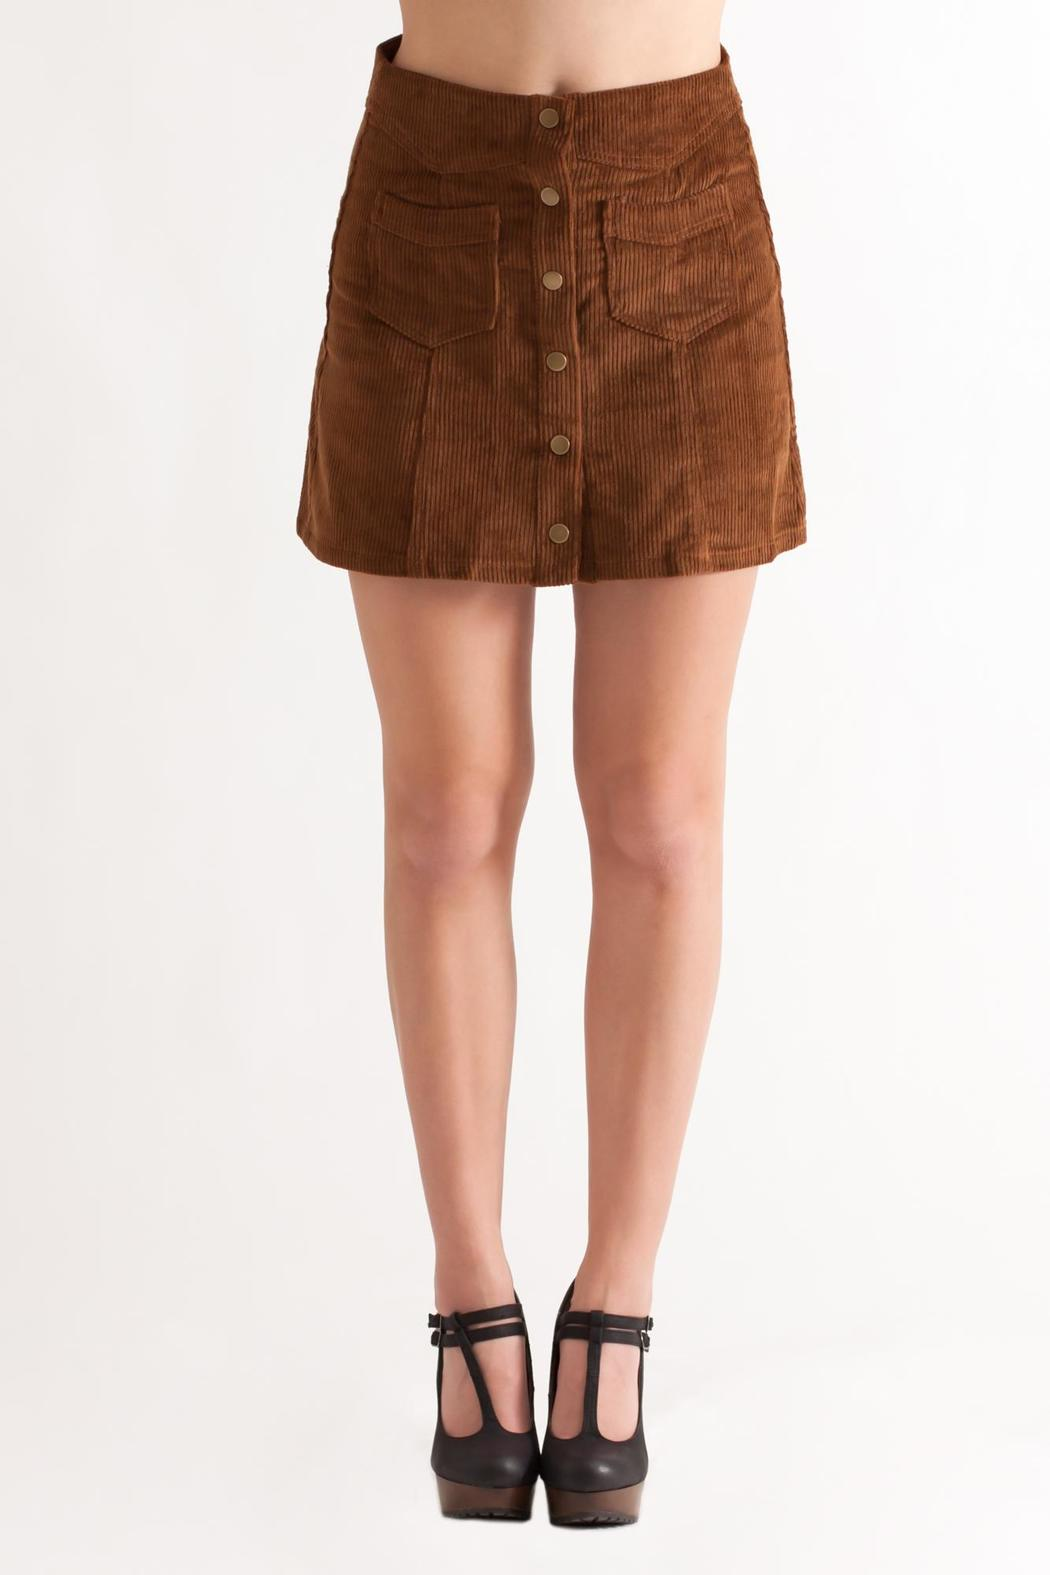 She   Sky Corduroy Mini Skirt from Philadelphia by May 23 — Shoptiques